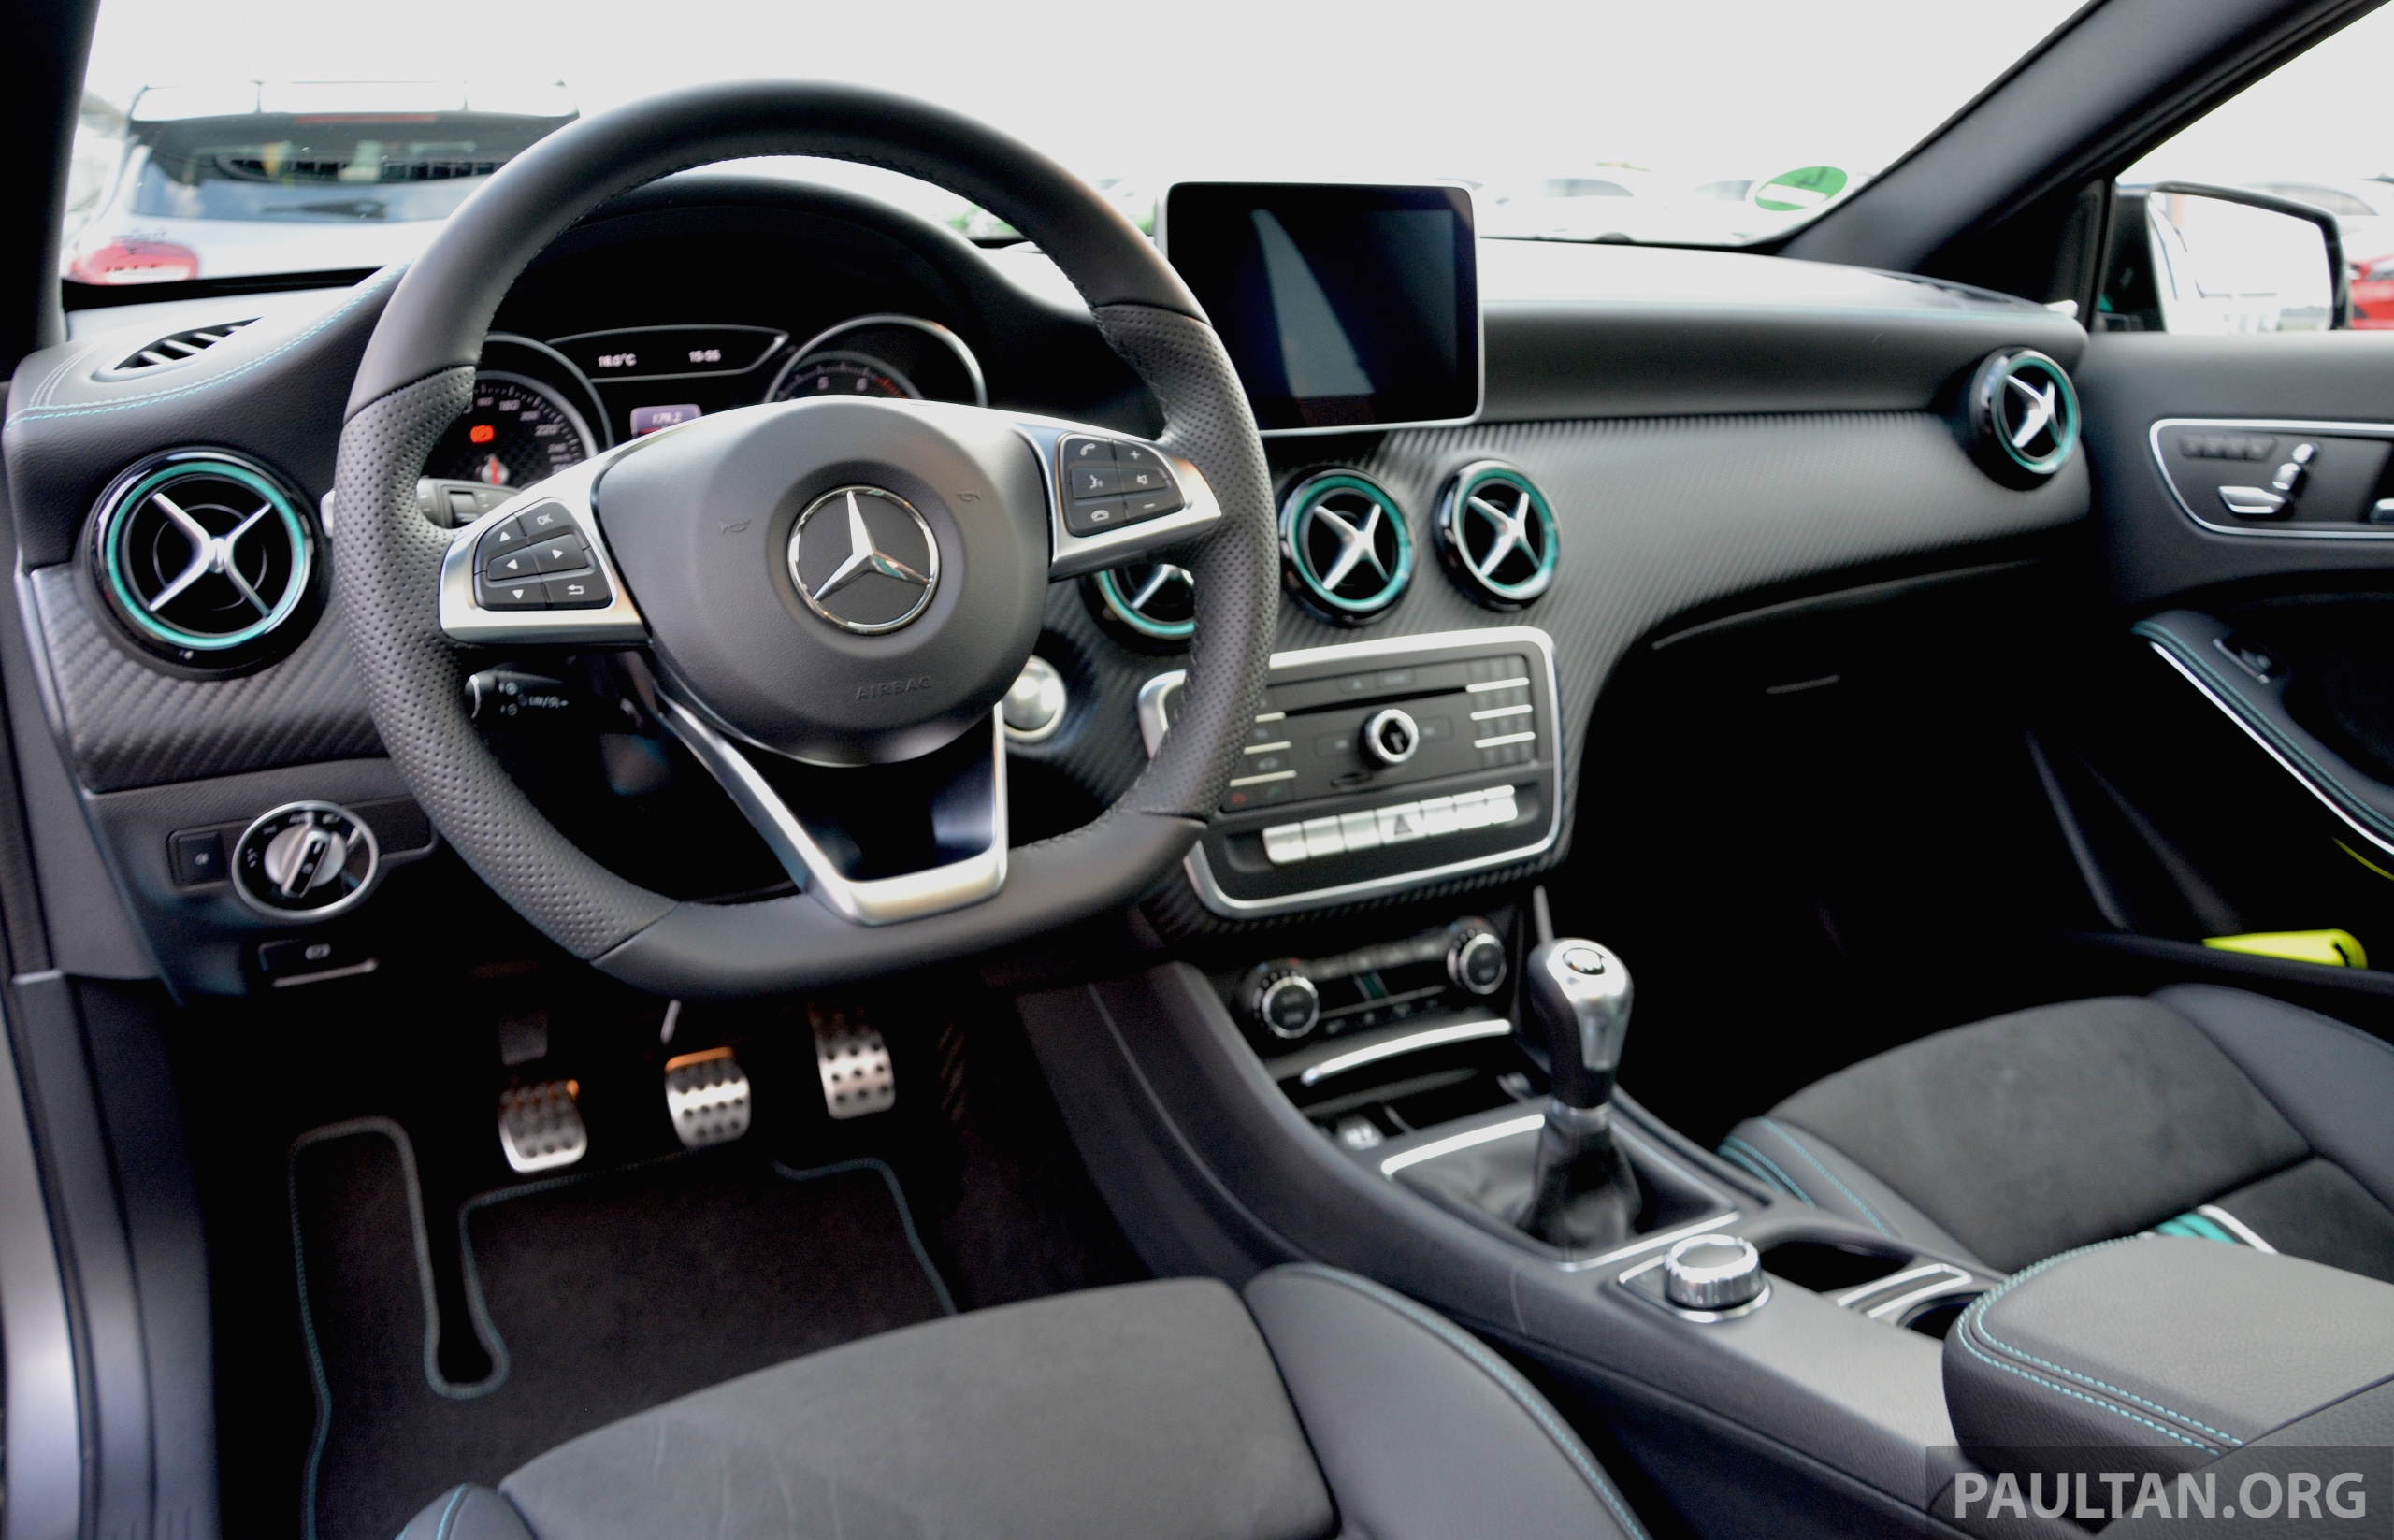 Gallery Mercedes Benz A Class Motorsport Edition Image 378908